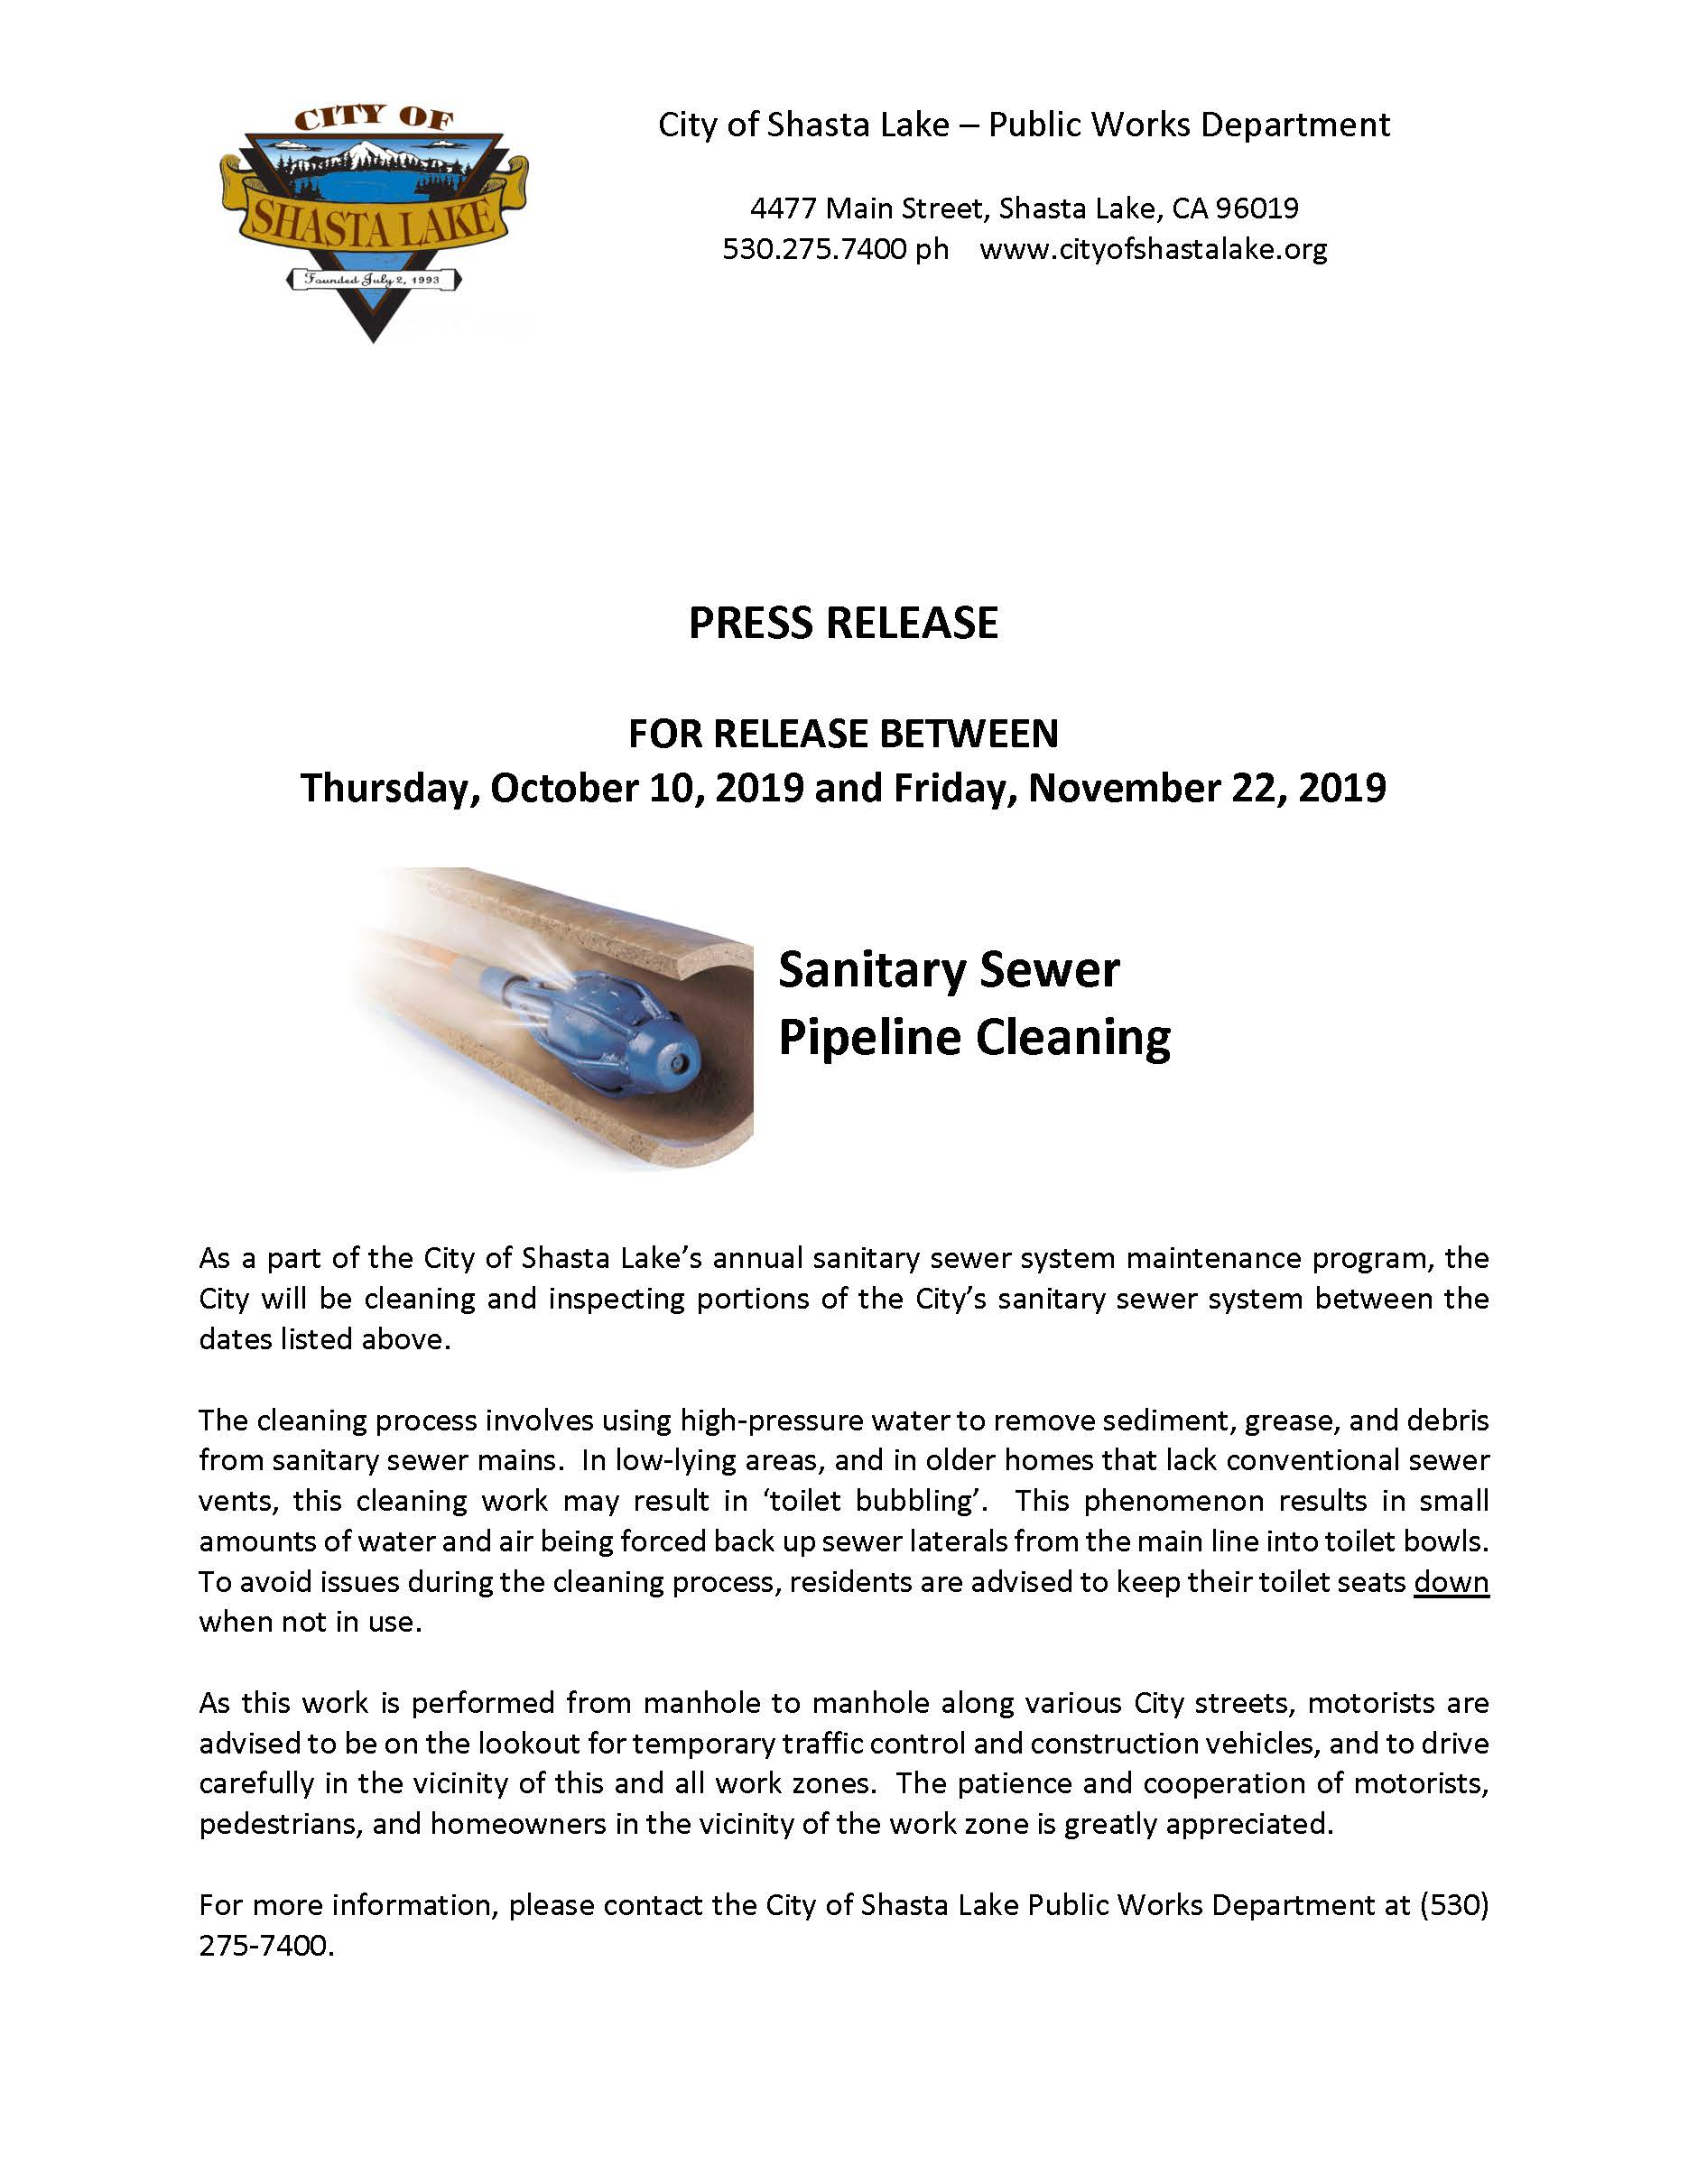 Press Release - Pipeline Cleaning 10-10-19 (003)